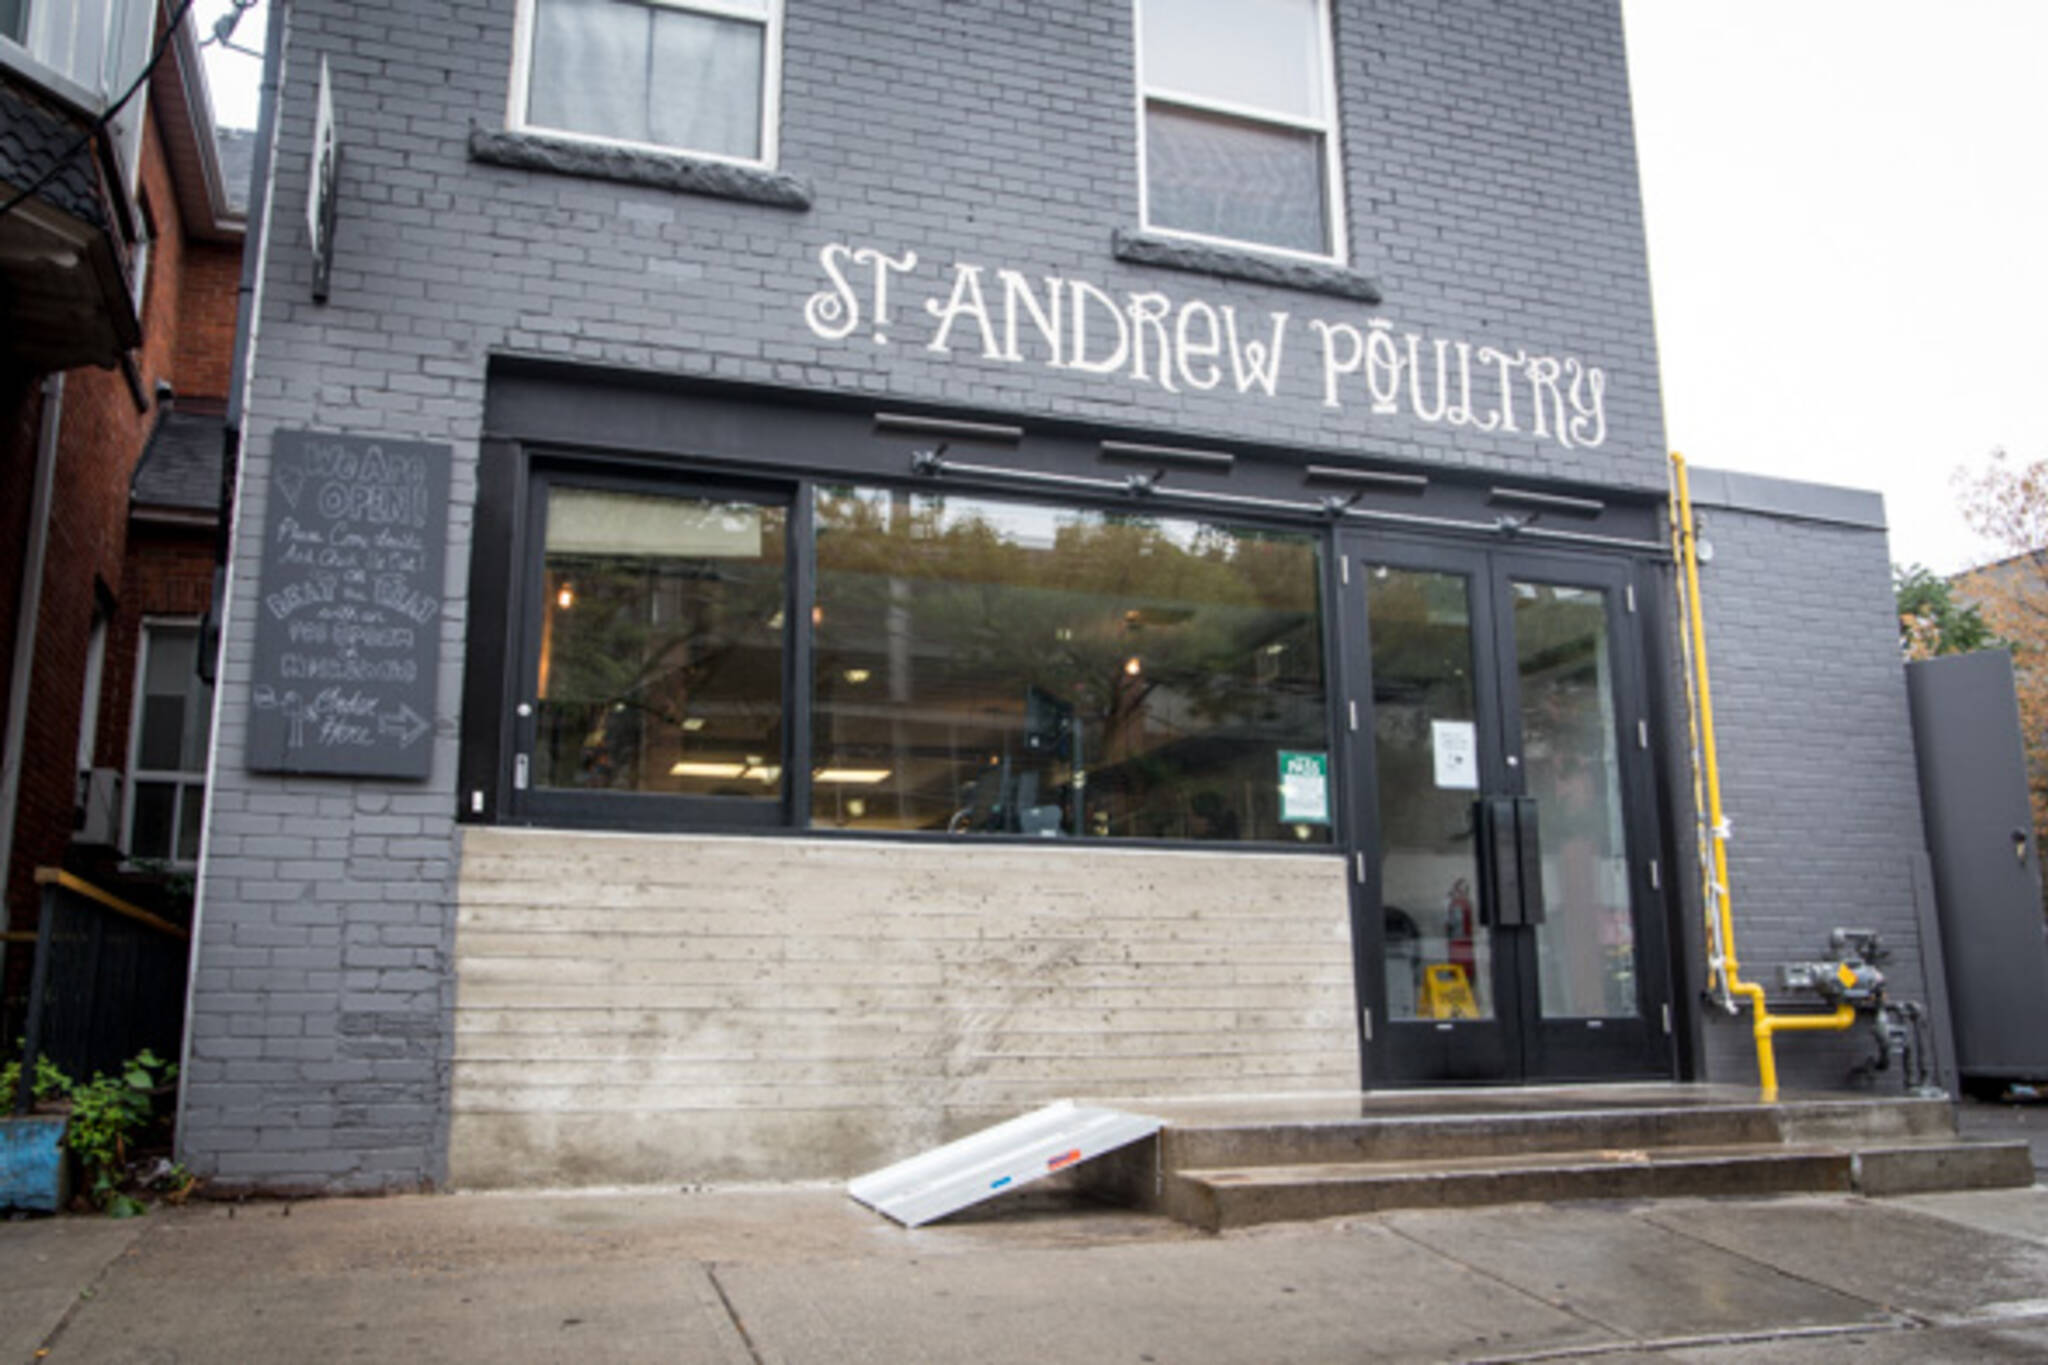 St. Andrew Poultry